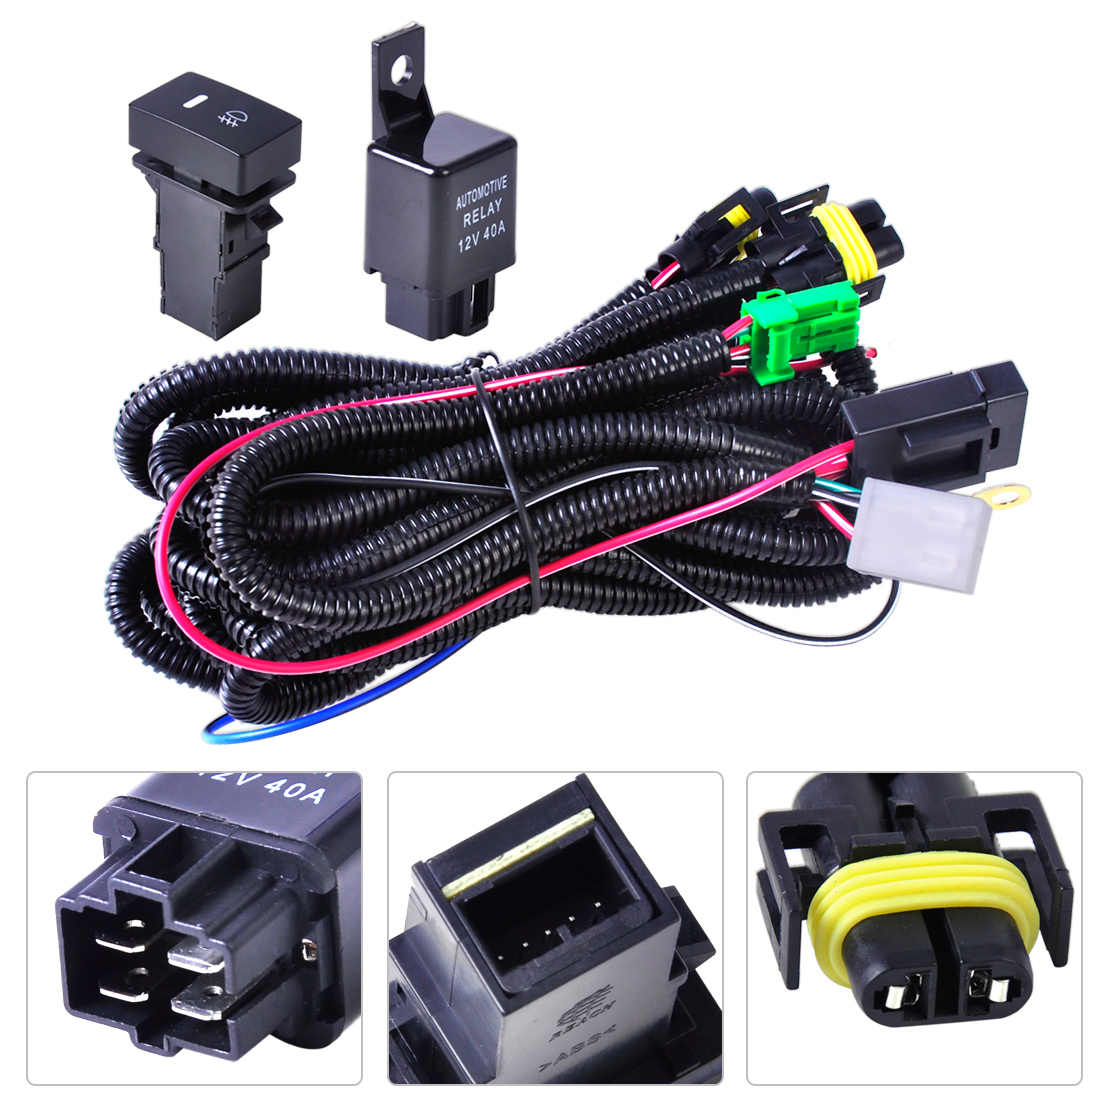 New Wiring Harness Sockets Wire + Switches for H11 Fog Light ... on